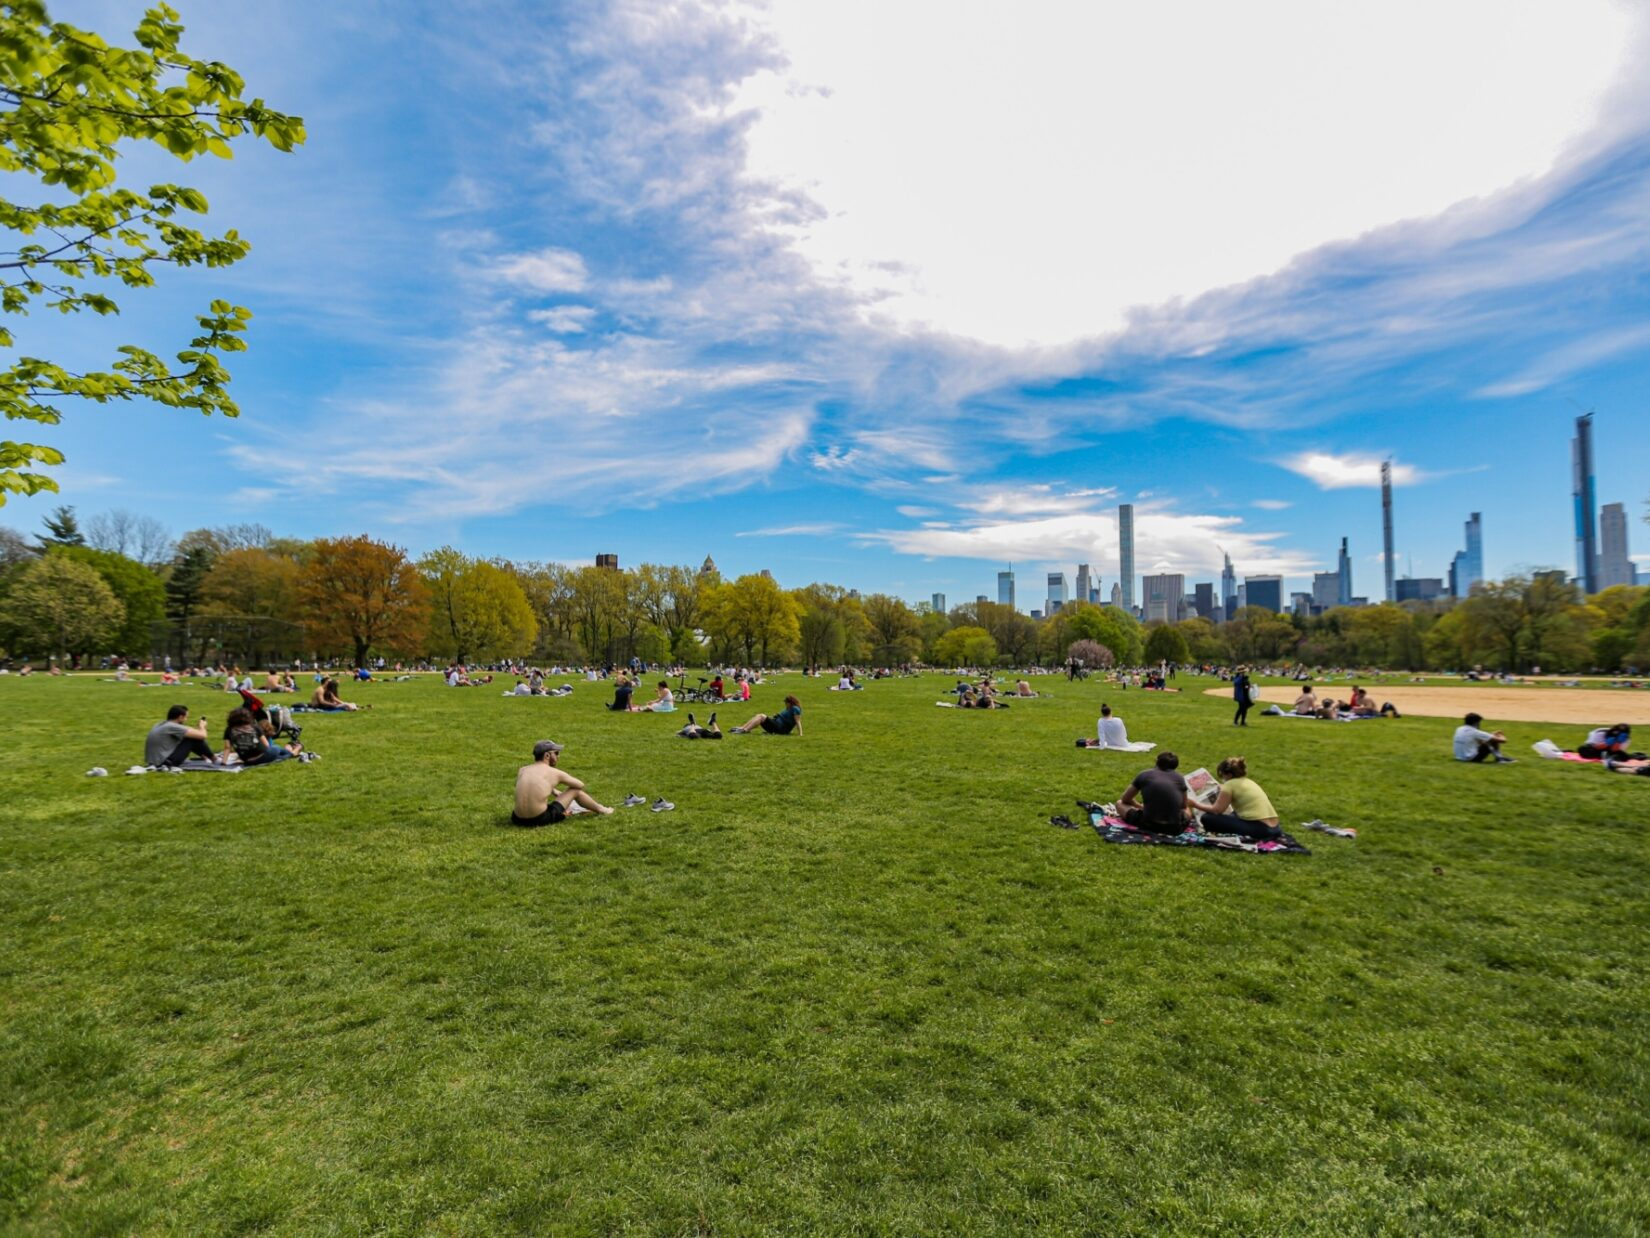 Socially-distanced parkgoers enjoying a summer day on the lawn